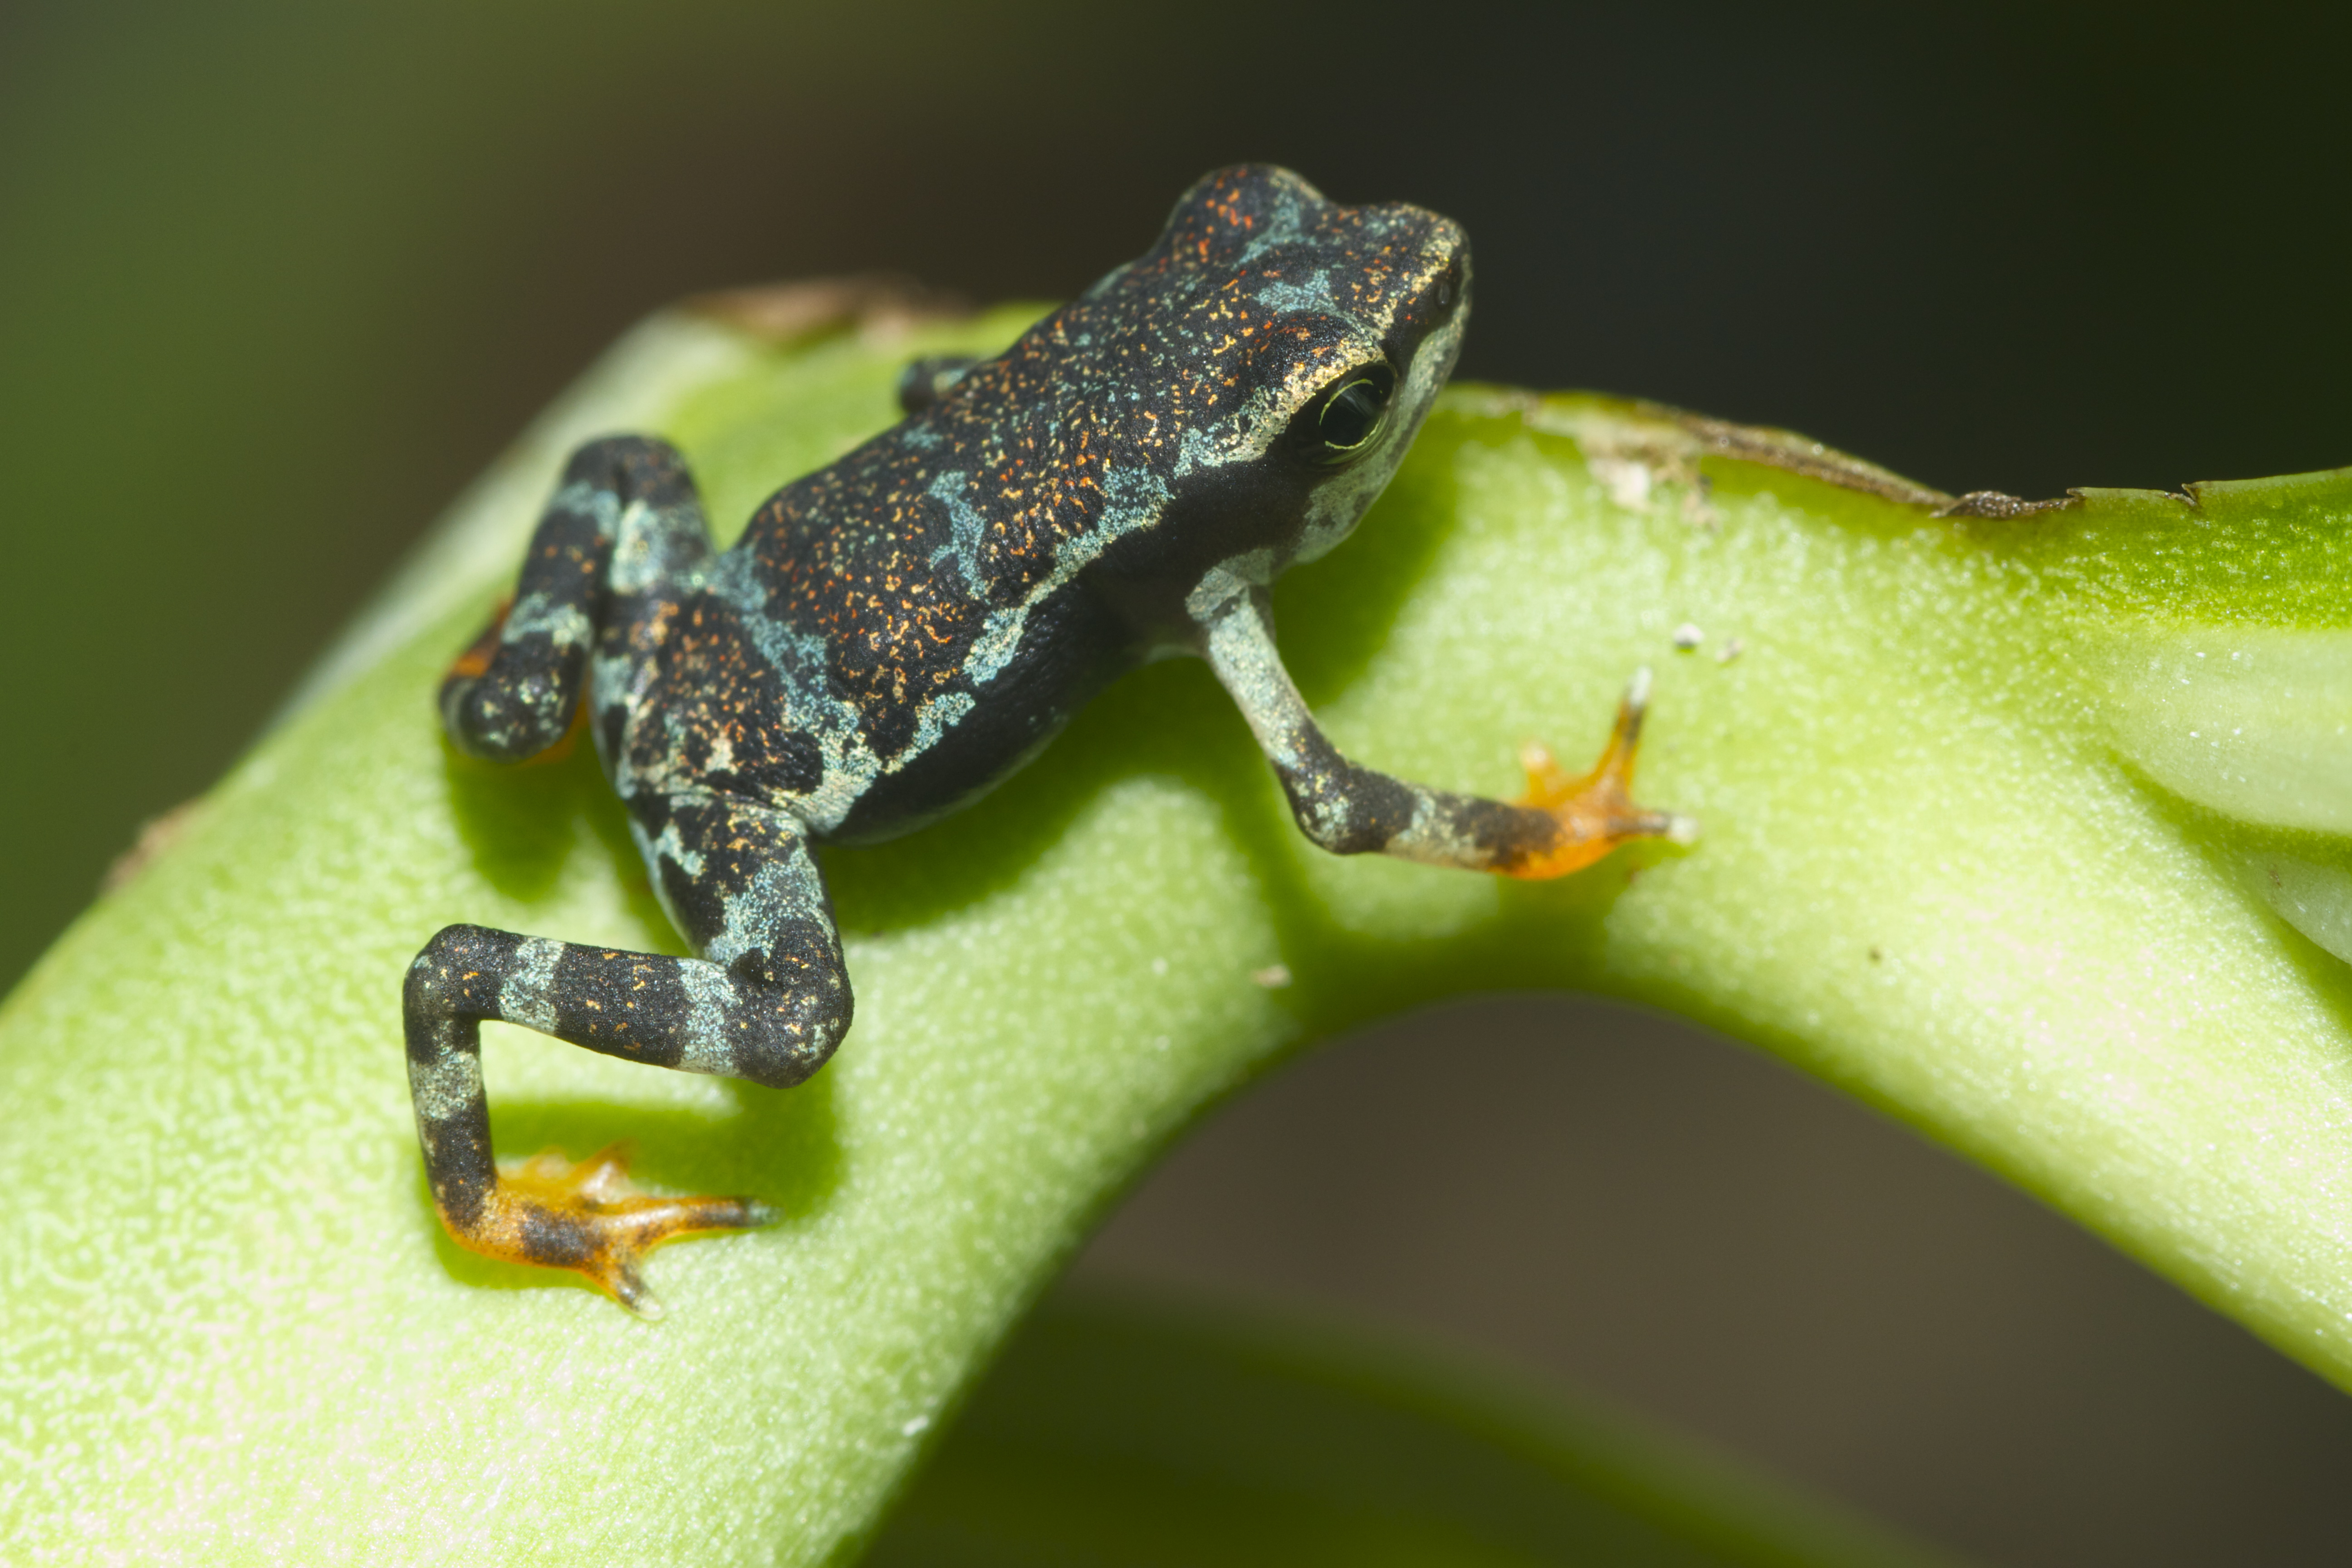 A juvenile Pirre harlequin frog. Some types of harlequin frog are extinct in the wild, thanks in part to a fungus called *Batrachochytrium dendrobatitis* that has ravaged wild populations throughout Panama. (credit: Courtesy of Brian Gratwicke via Flickr)